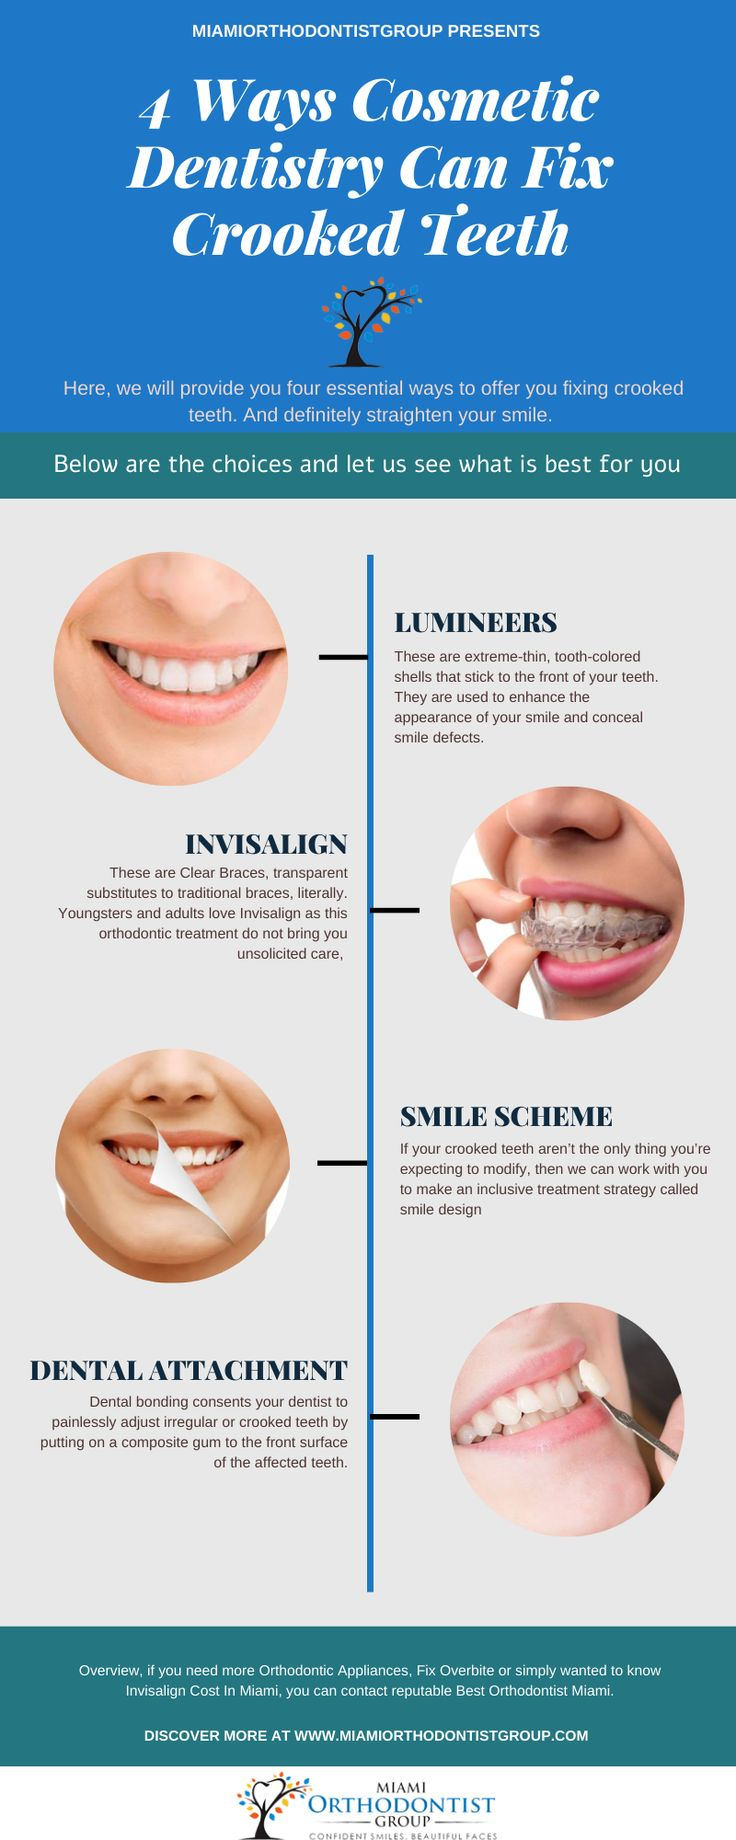 4 Ways Cosmetic Dentistry Can Fix Crooked Teethcosmetic